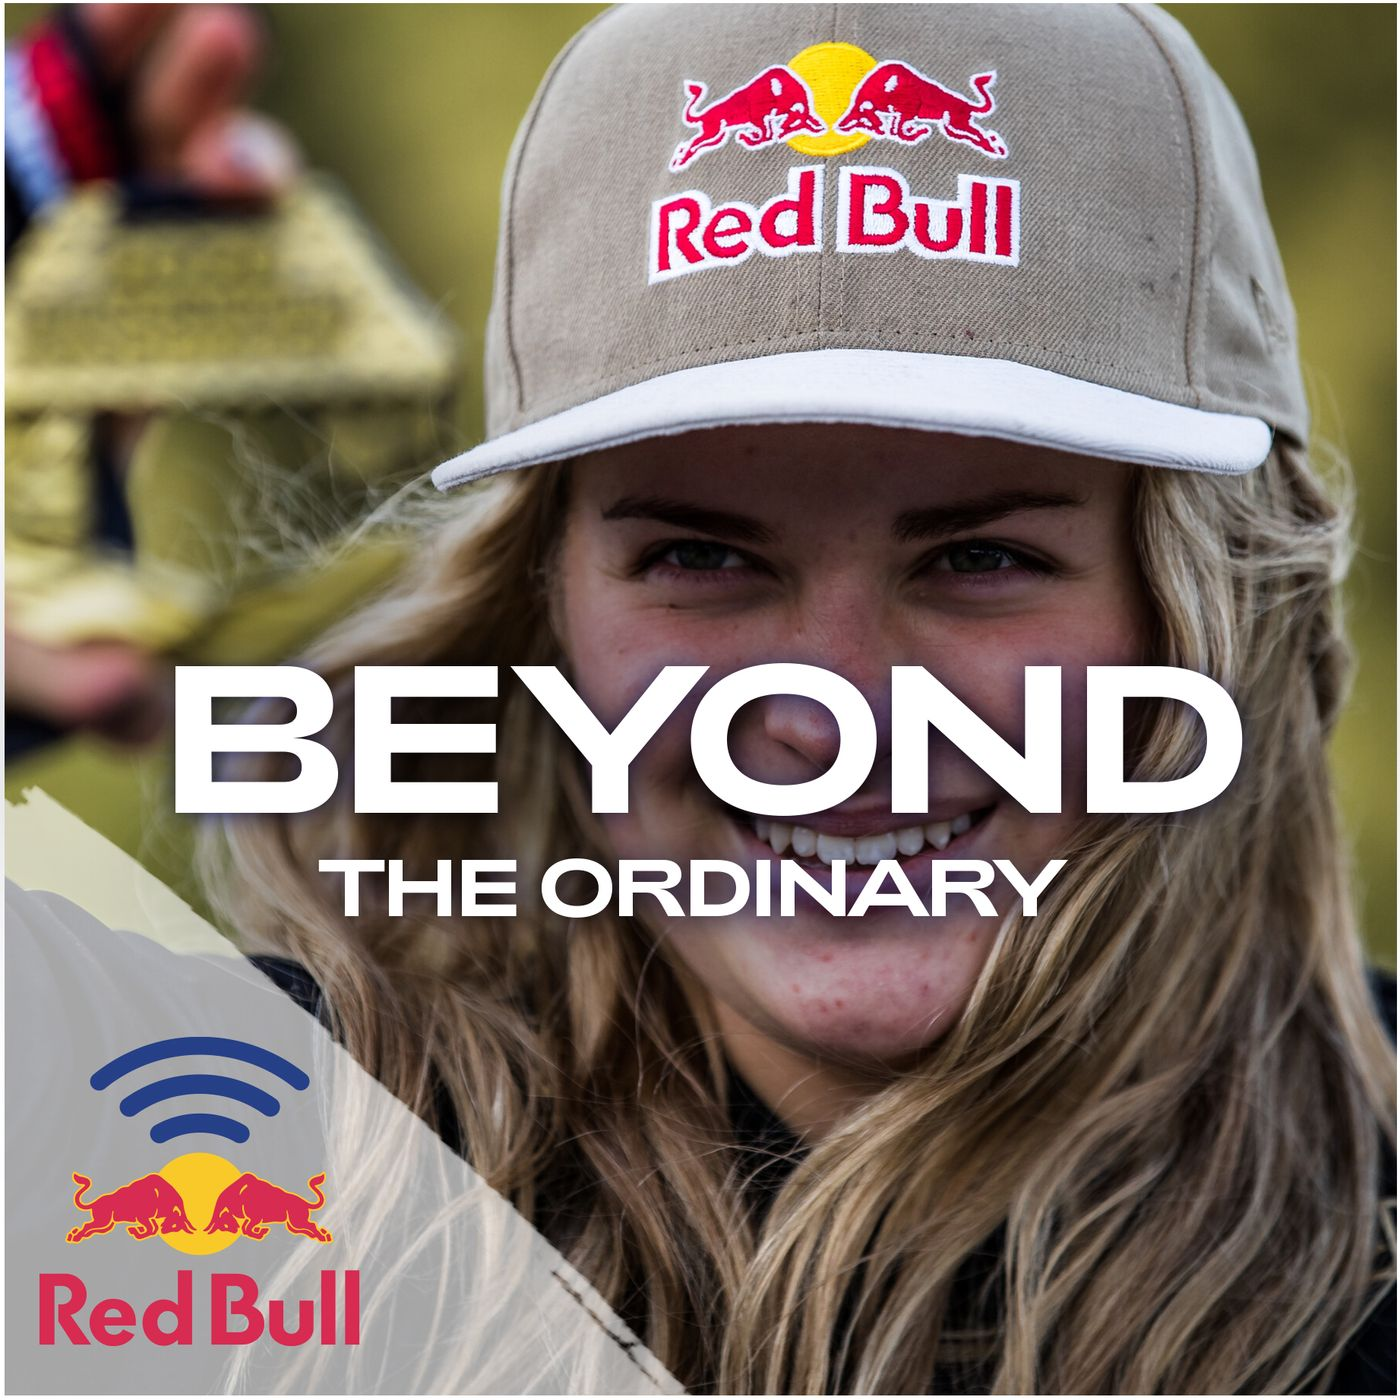 MTB's future star Vali Höll receives a surprise call from her hero Rachel Atherton